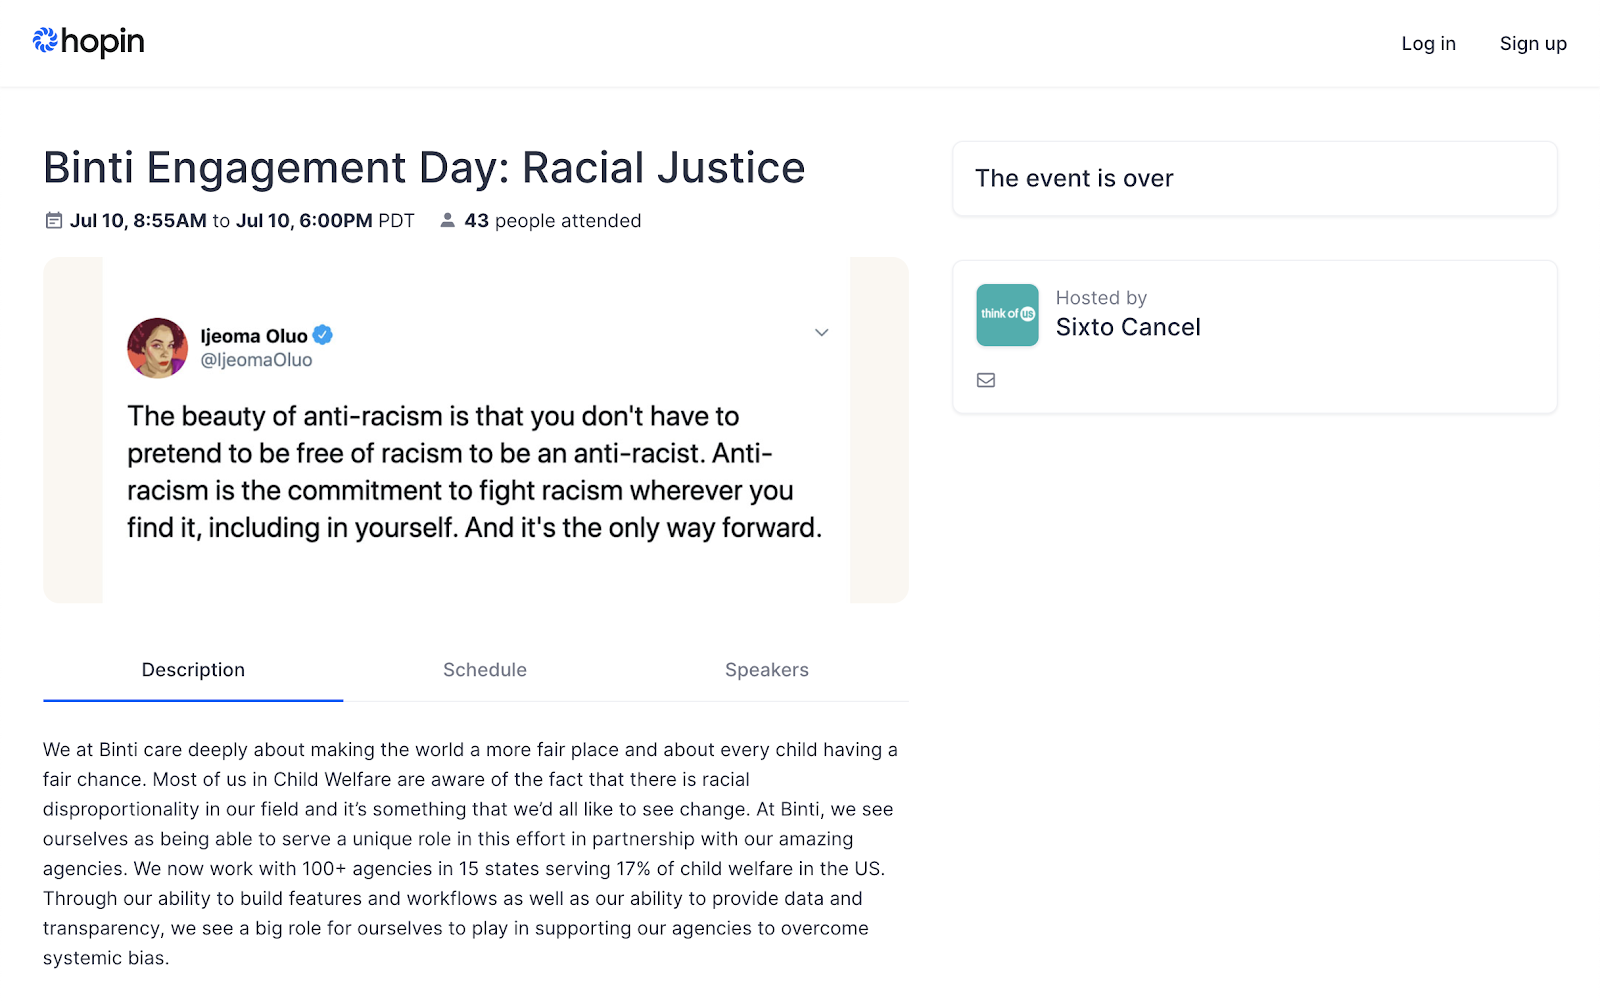 "A screenshot of an app called Hopin, with the title Binti Engagement Day: Racial Justice, displaying the date July 10. The event listing features a quote by Ijeoma Oluo from twitter that states, ""The beauty of anti-racism is that you don't have to pretend to be free of racism to be an anti-racist. Anti-racism is the commitment to fight racism wherever you find it, including in yourself. And it's the only way forward."""